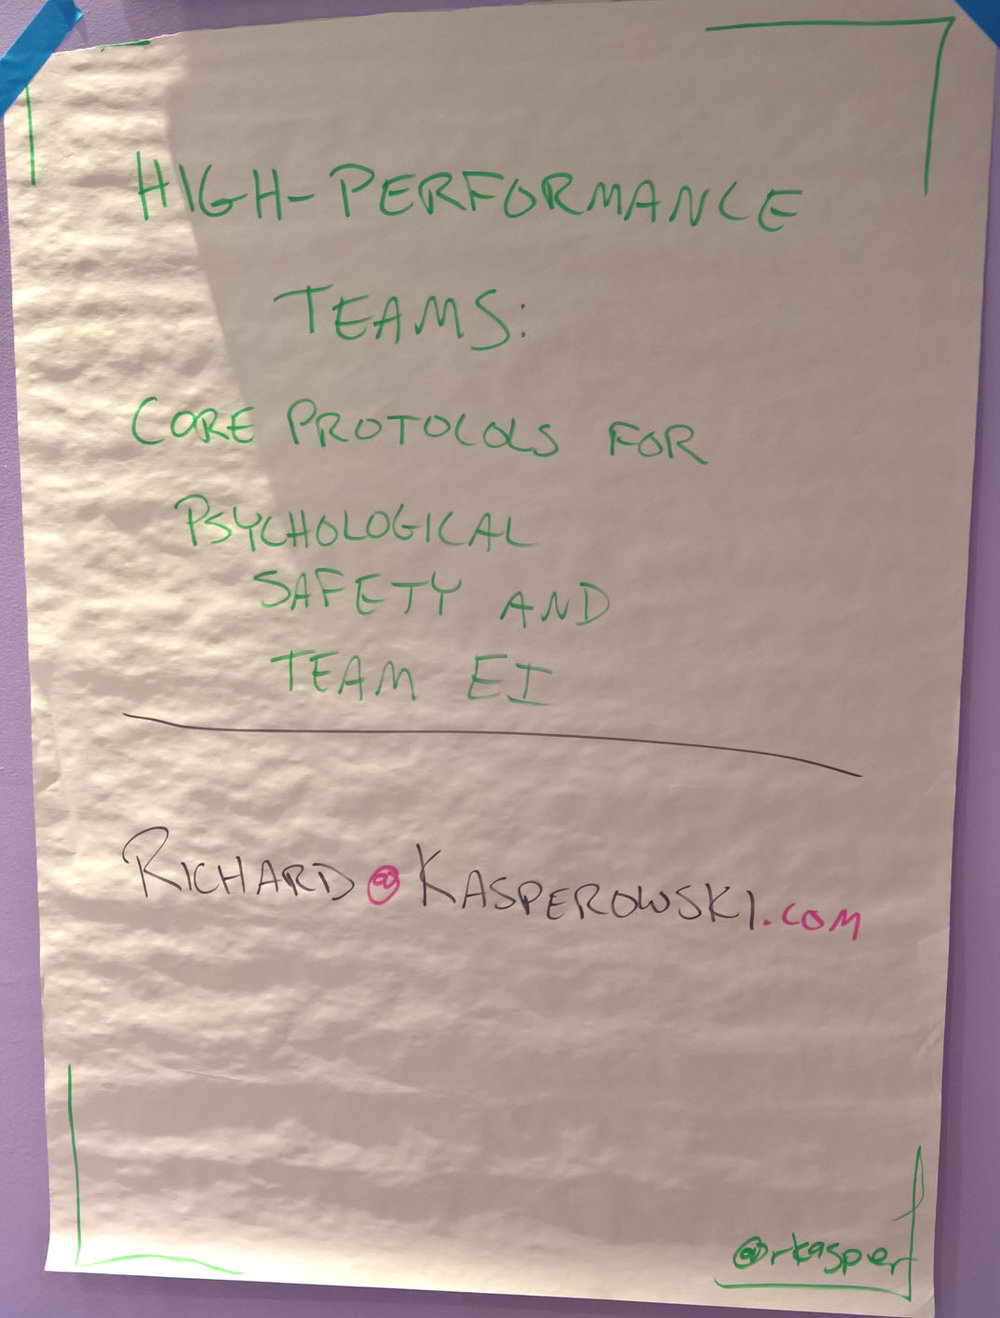 GGcon Flipchart 1 high perf team.jpg